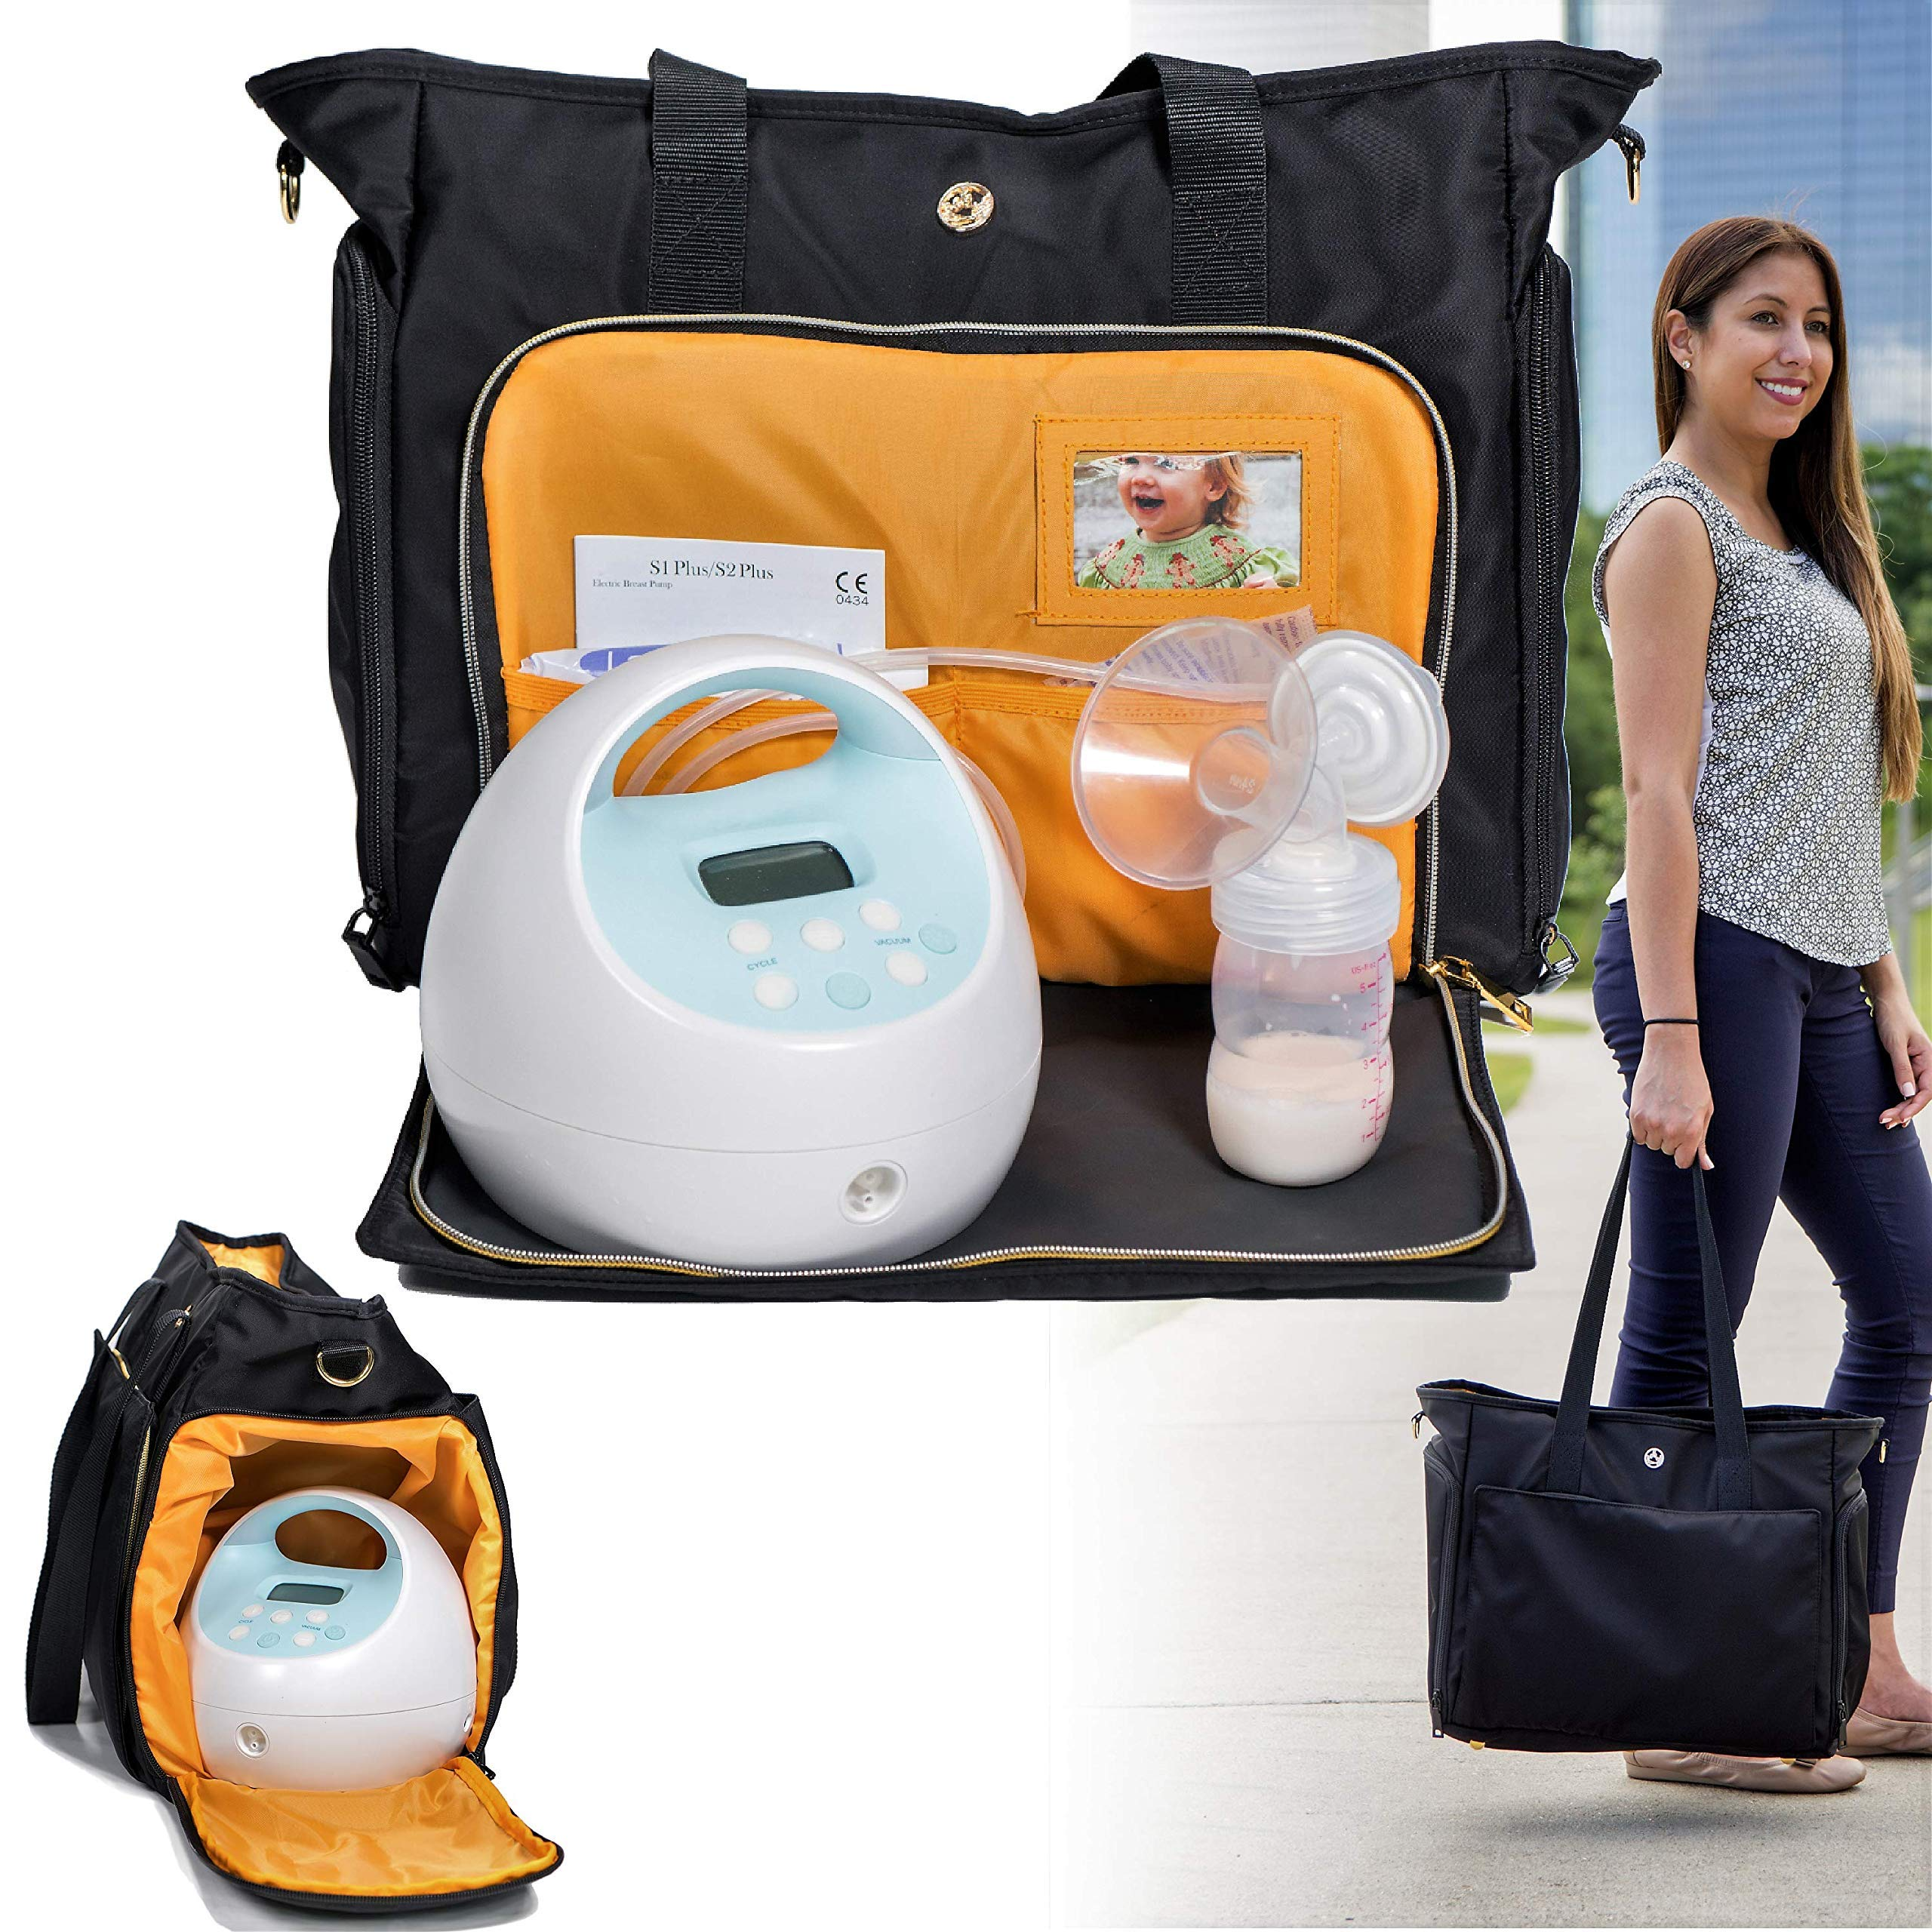 Zohzo Lauren Breast Pump Bag - Portable Tote Bag Great for Travel or Storage - Includes Padded Laptop Sleeve - Fits Most Major Pumps Including Medela and Spectra Breastpump (Black) by Zohzo